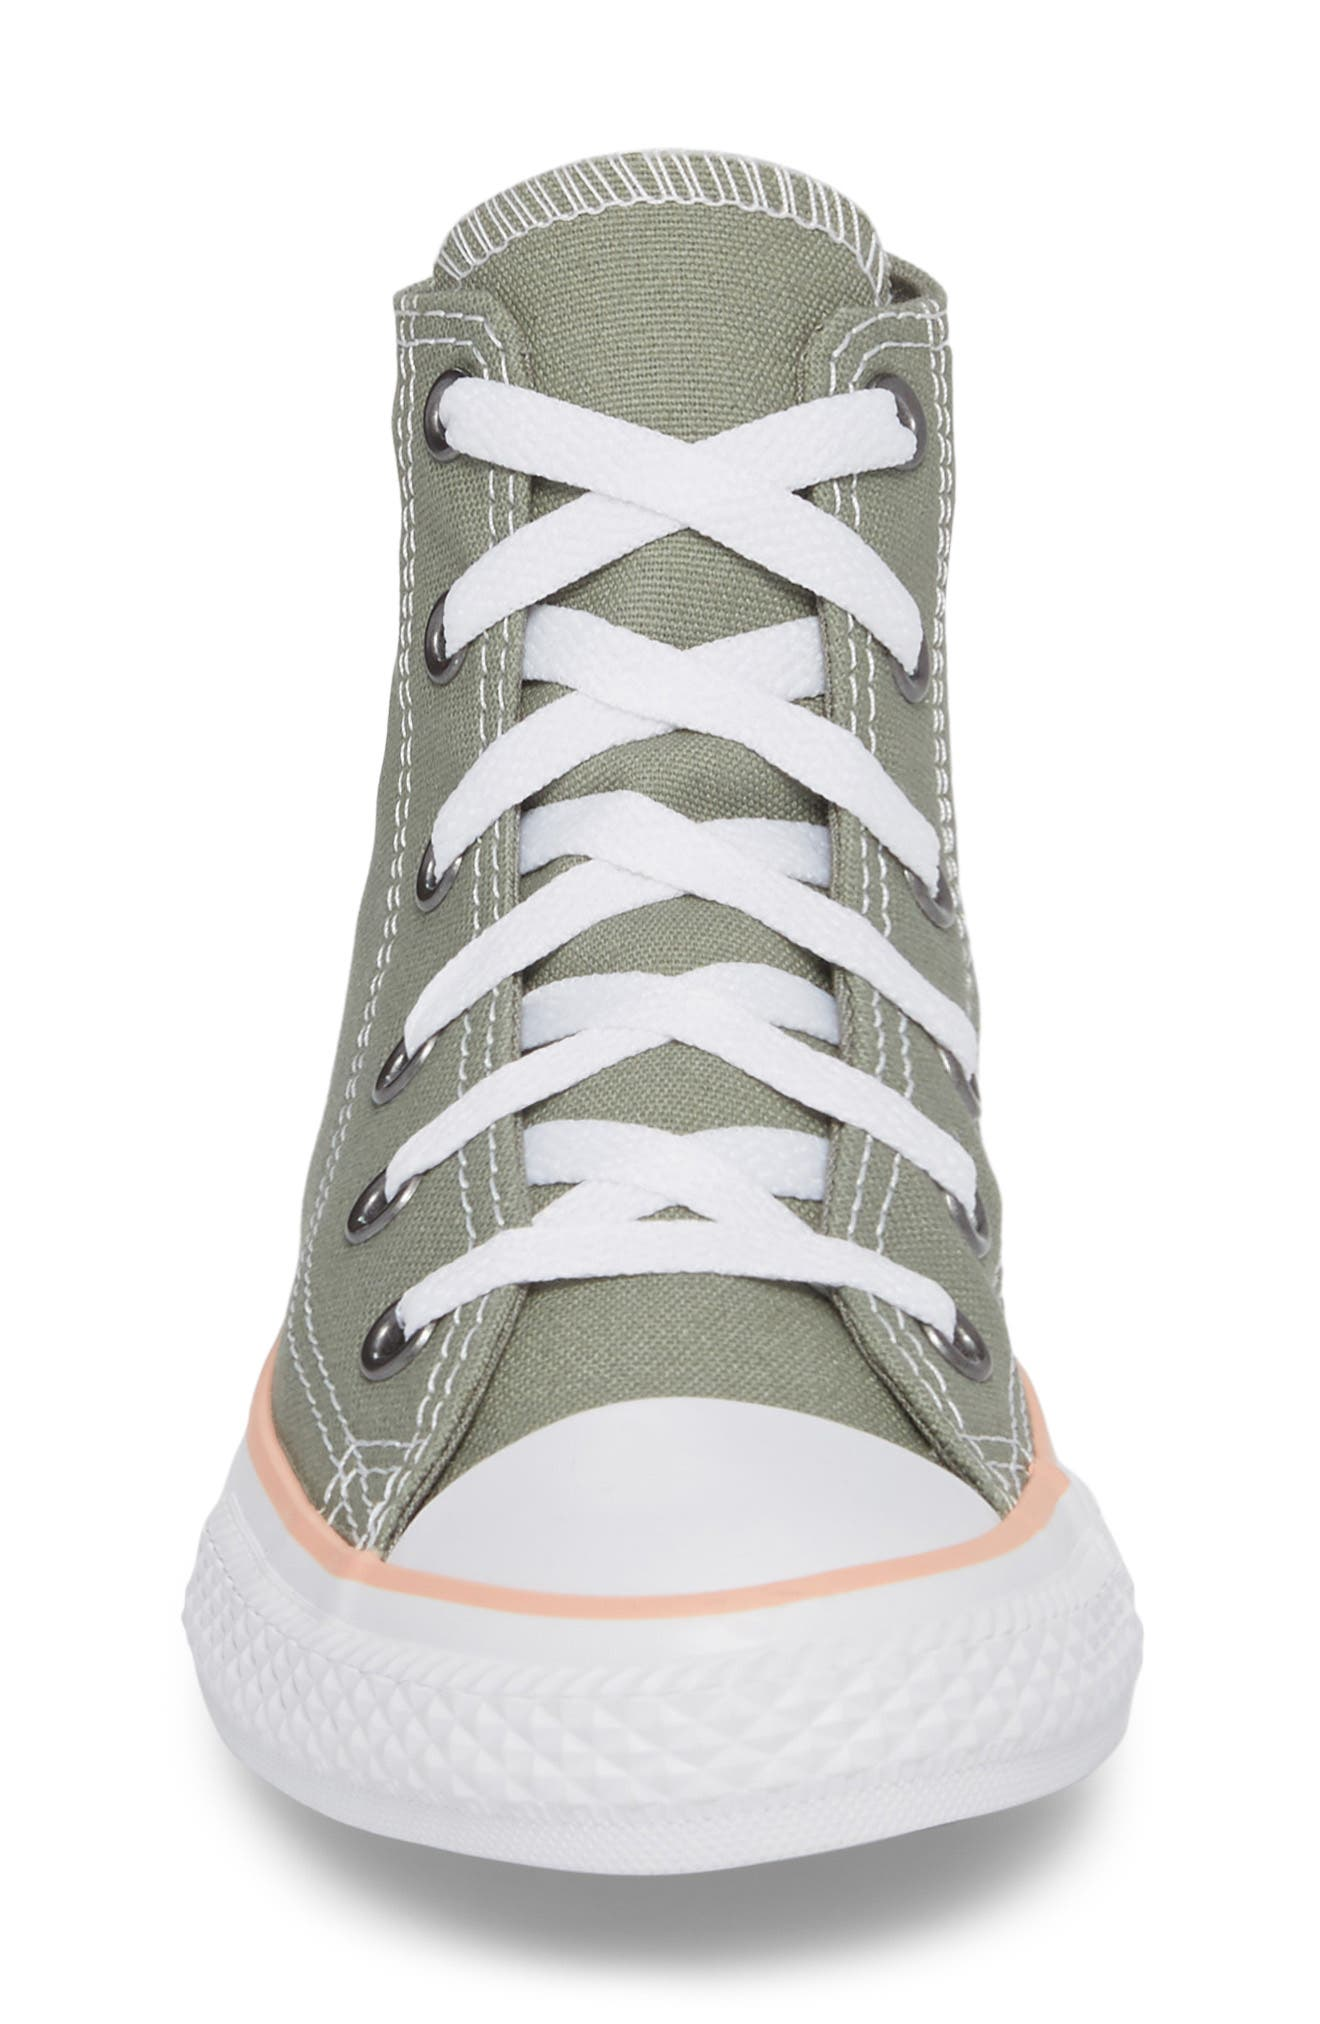 Alternate Image 4  - Converse Chuck Taylor® All Star® High Top Sneaker (Baby, Walker, Toddler, Little Kid & Big Kid)